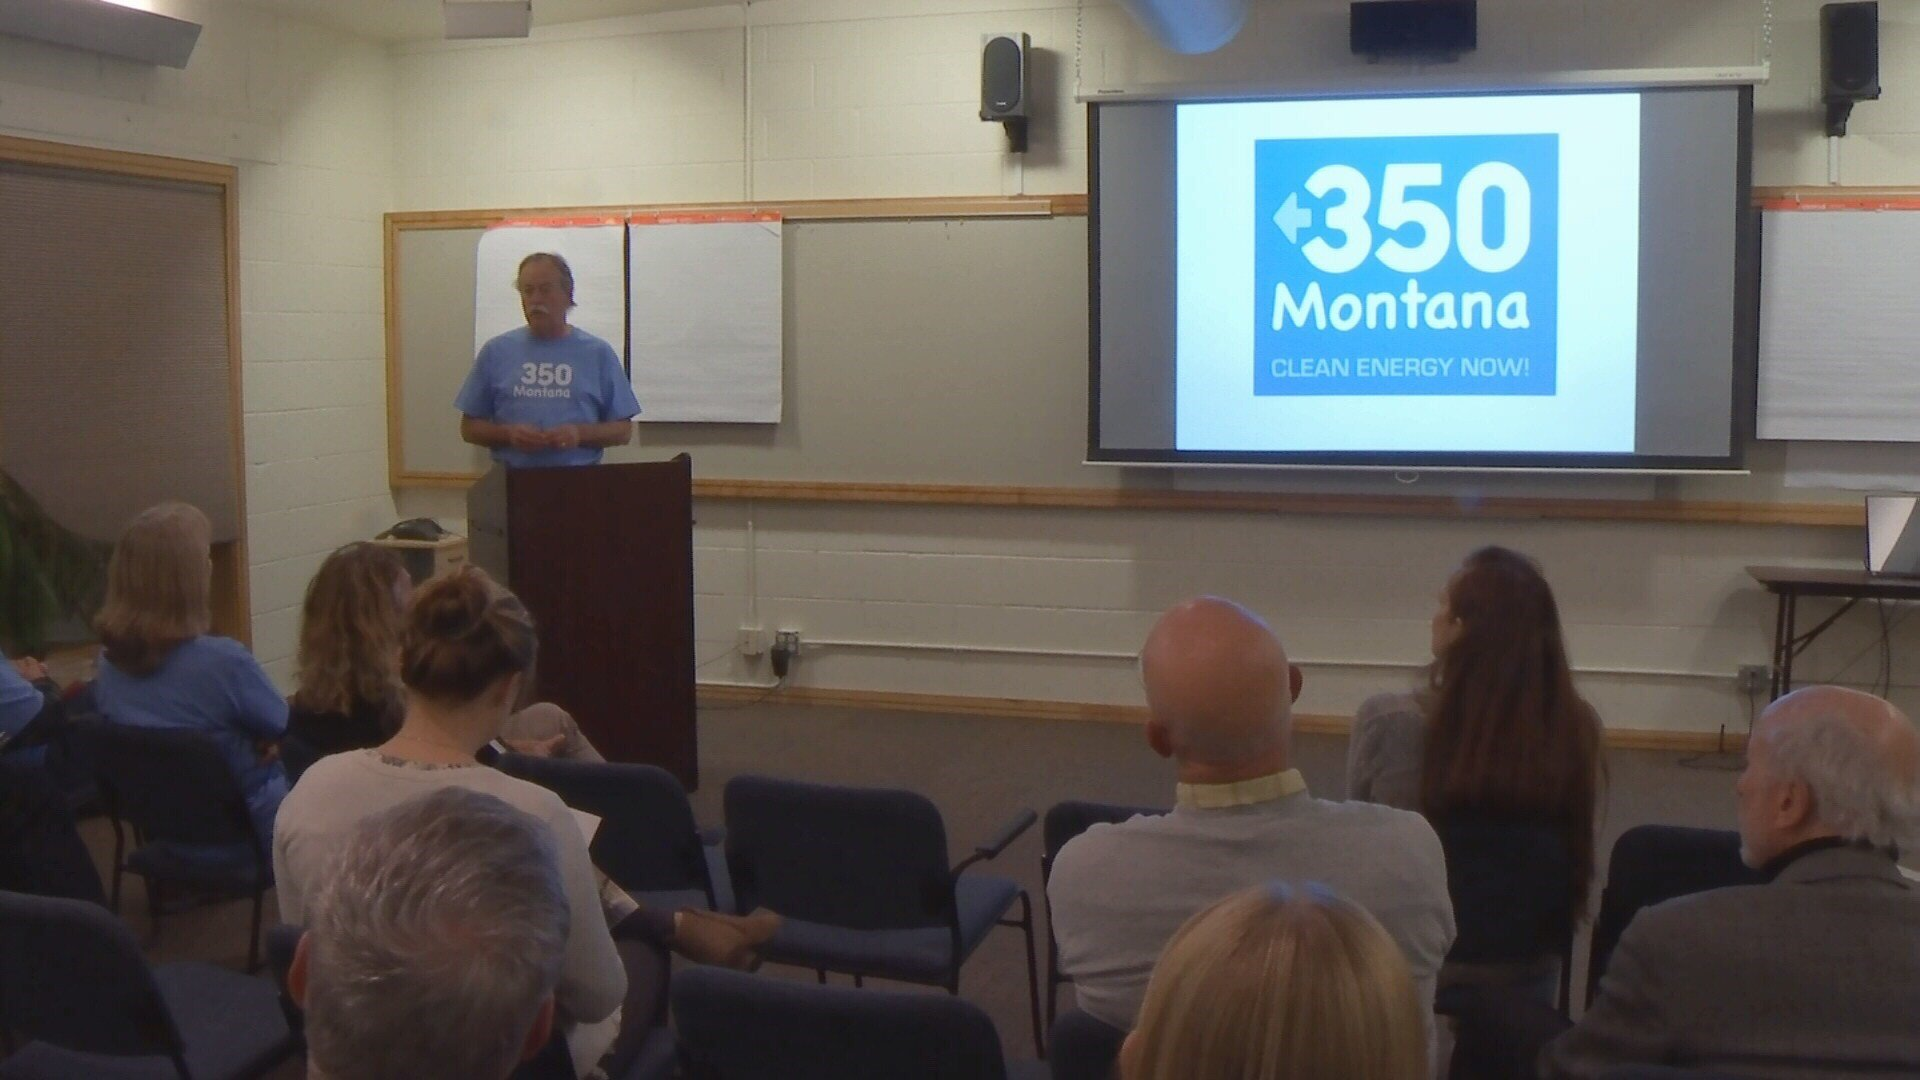 The group 350 Montana envisions a 100% renewable global energy system using wind, water, and solar. (MTN News photo)